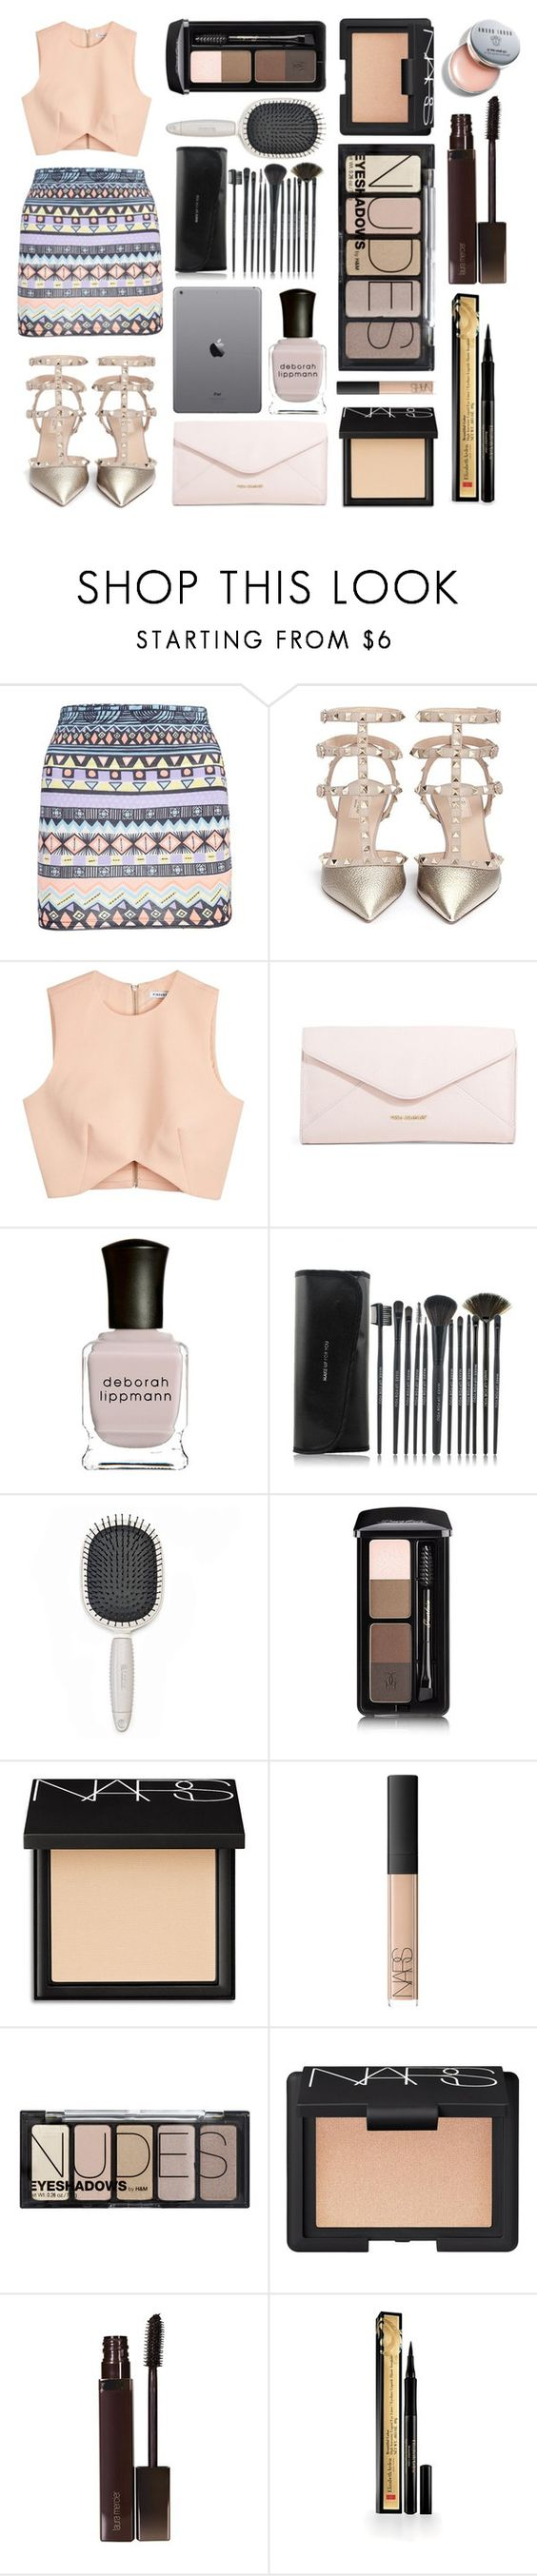 """Untitled #13"" by missbaovang ❤ liked on Polyvore featuring Boohoo, Valentino, Finders Keepers, Vera Bradley, Deborah Lippmann, Earth Therapeutics, Guerlain, NARS Cosmetics, H&M and Laura Mercier"